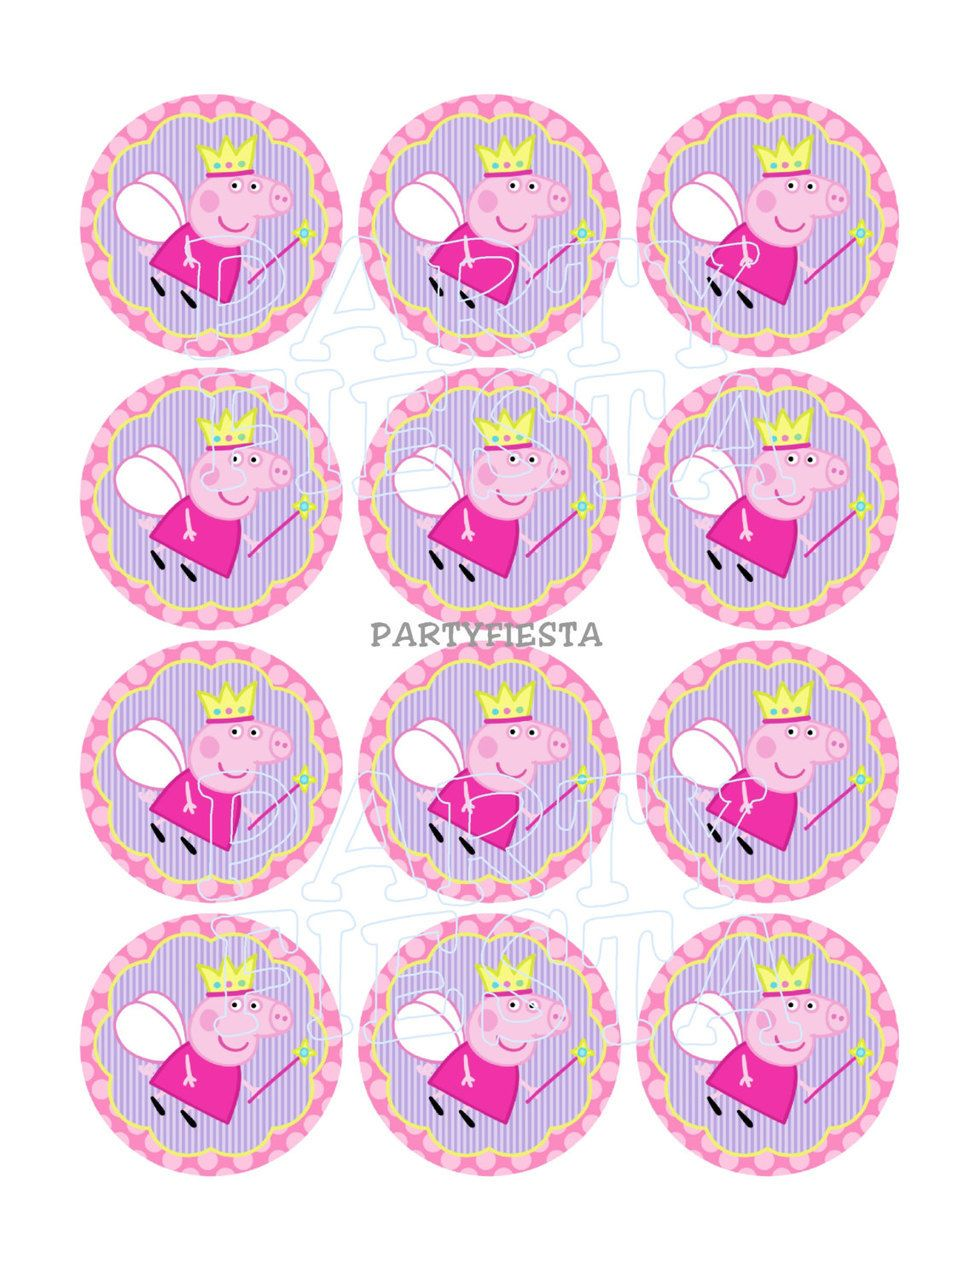 24 x 4cm Personalised Stickers Round Birthday Balloons Colourful Party Labels